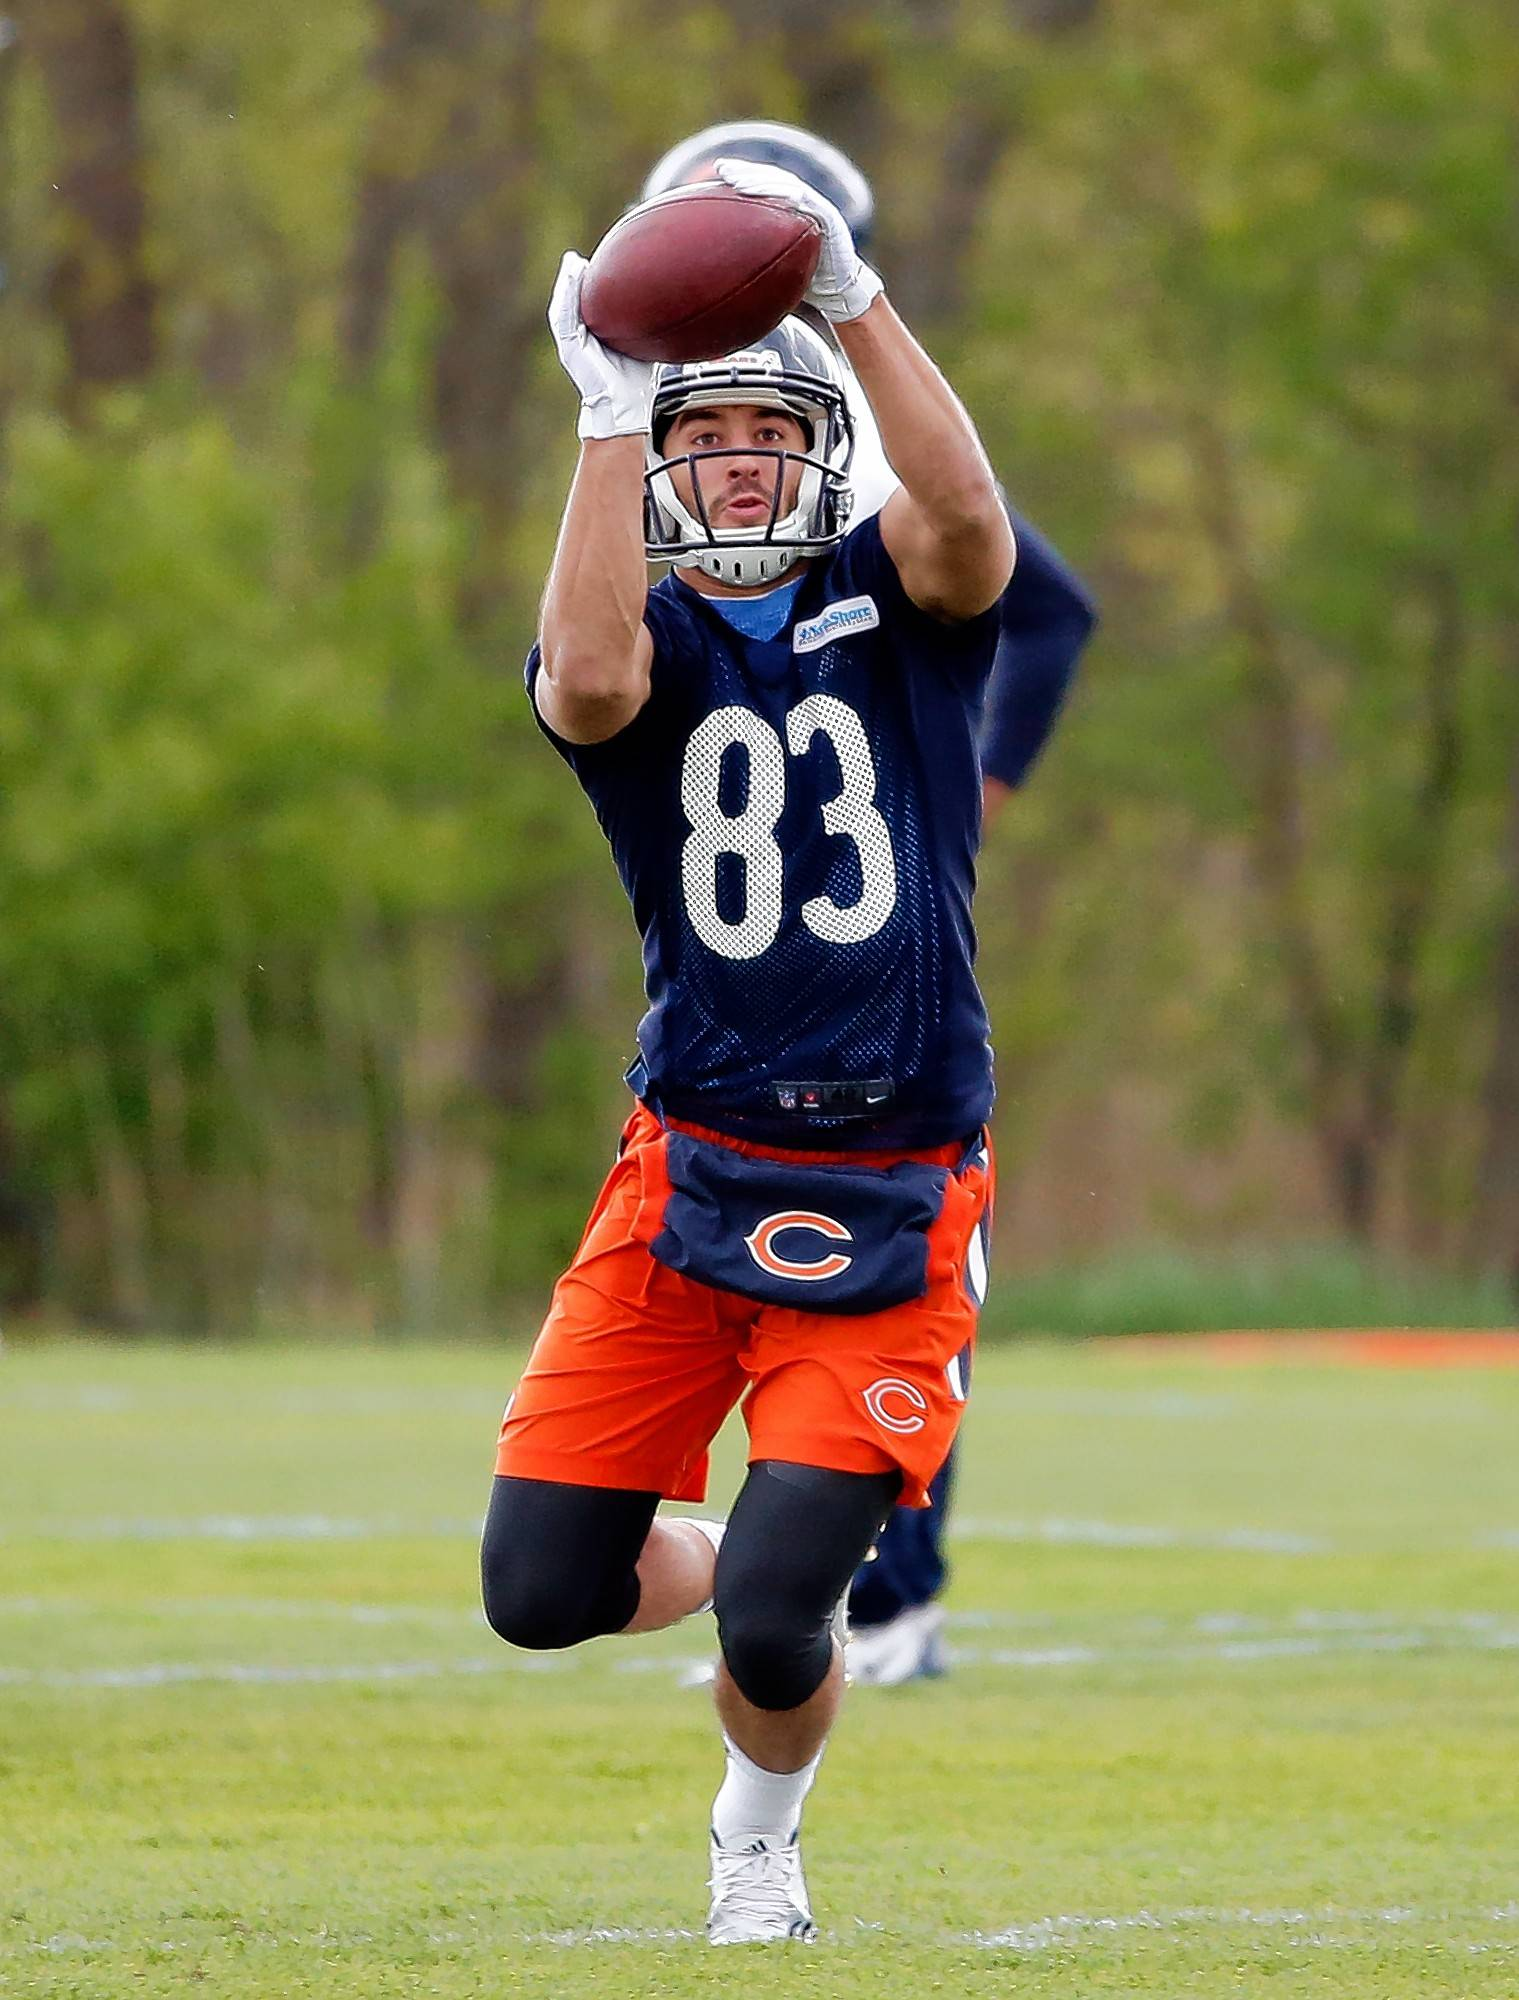 Chicago Bears wide receiver Daniel Braverman catches a ball during the team's NFL rookie minicamp football practice Saturday, May 14, 2016, in Lake Forest, Ill. (AP Photo/Nam Y. Huh)